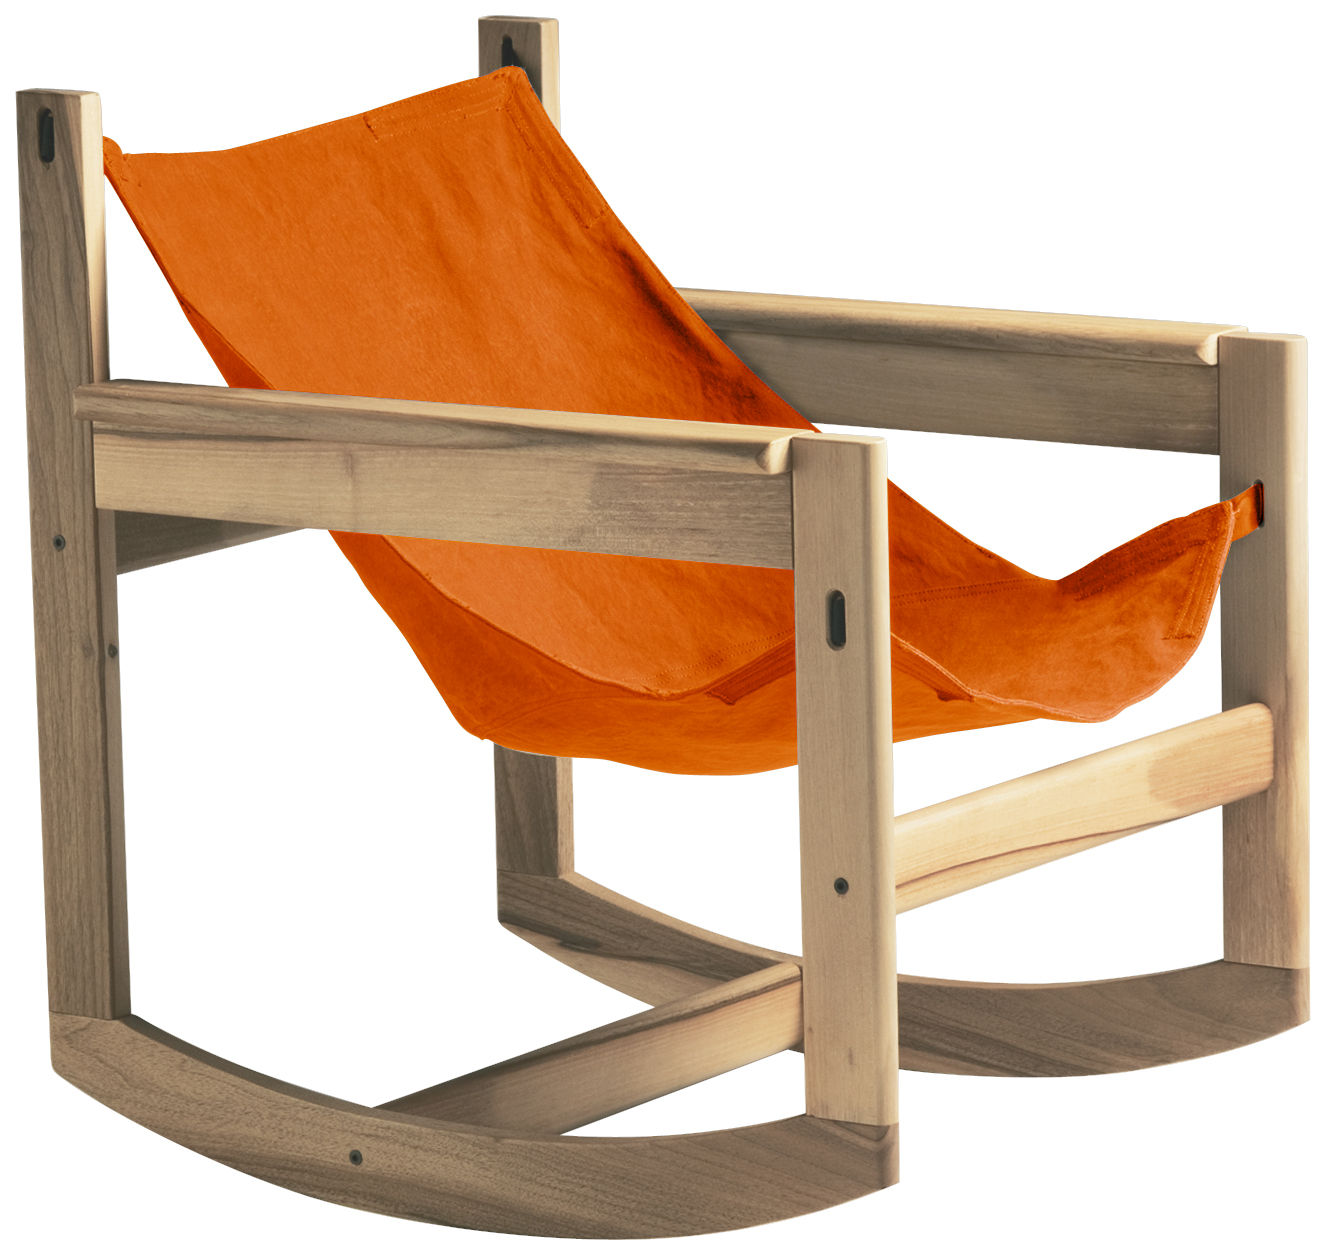 Furniture - Armchairs - Pelicano Rocking chair - Rocking chair by Objekto - Oak structure / Paprika cover - Cotton, Oak